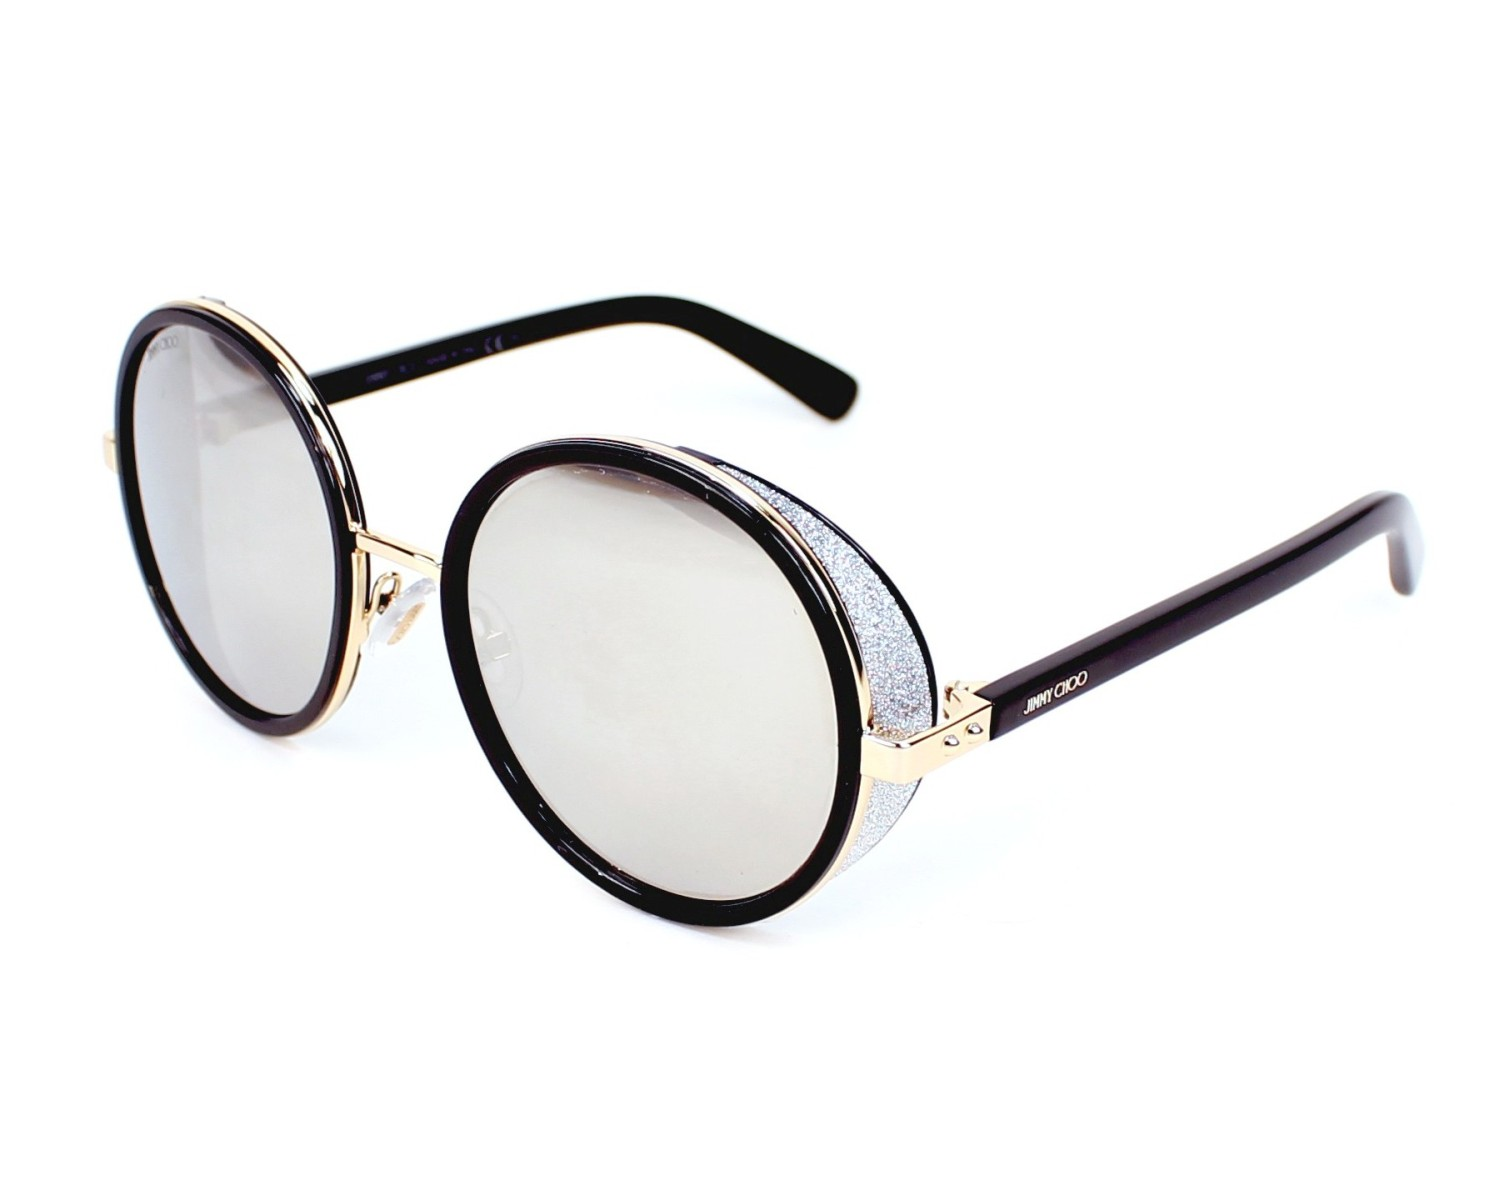 c6d7a5a4d3e2 Sunglasses Jimmy Choo ANDIE-S J7Q M3 54-21 Black Gold profile view